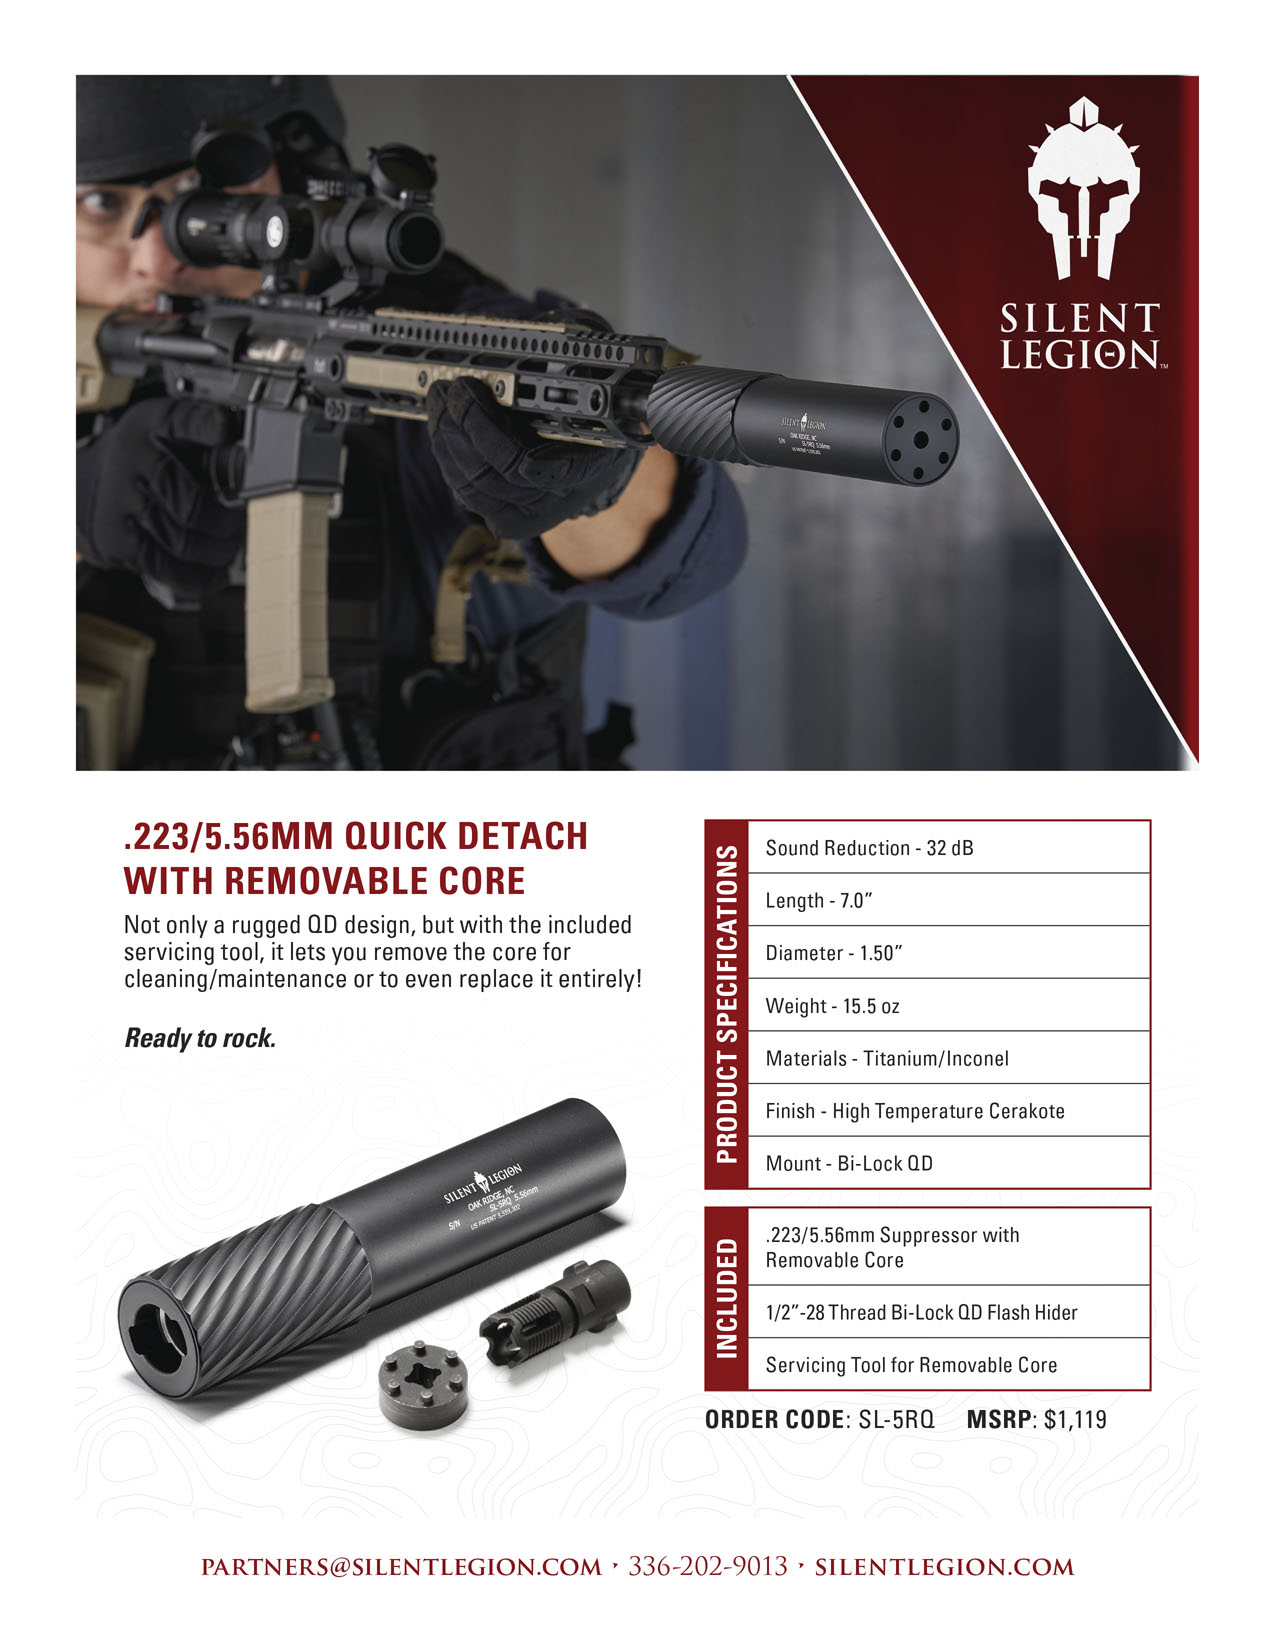 .223/5.56MM Quick Detach with Removable Core